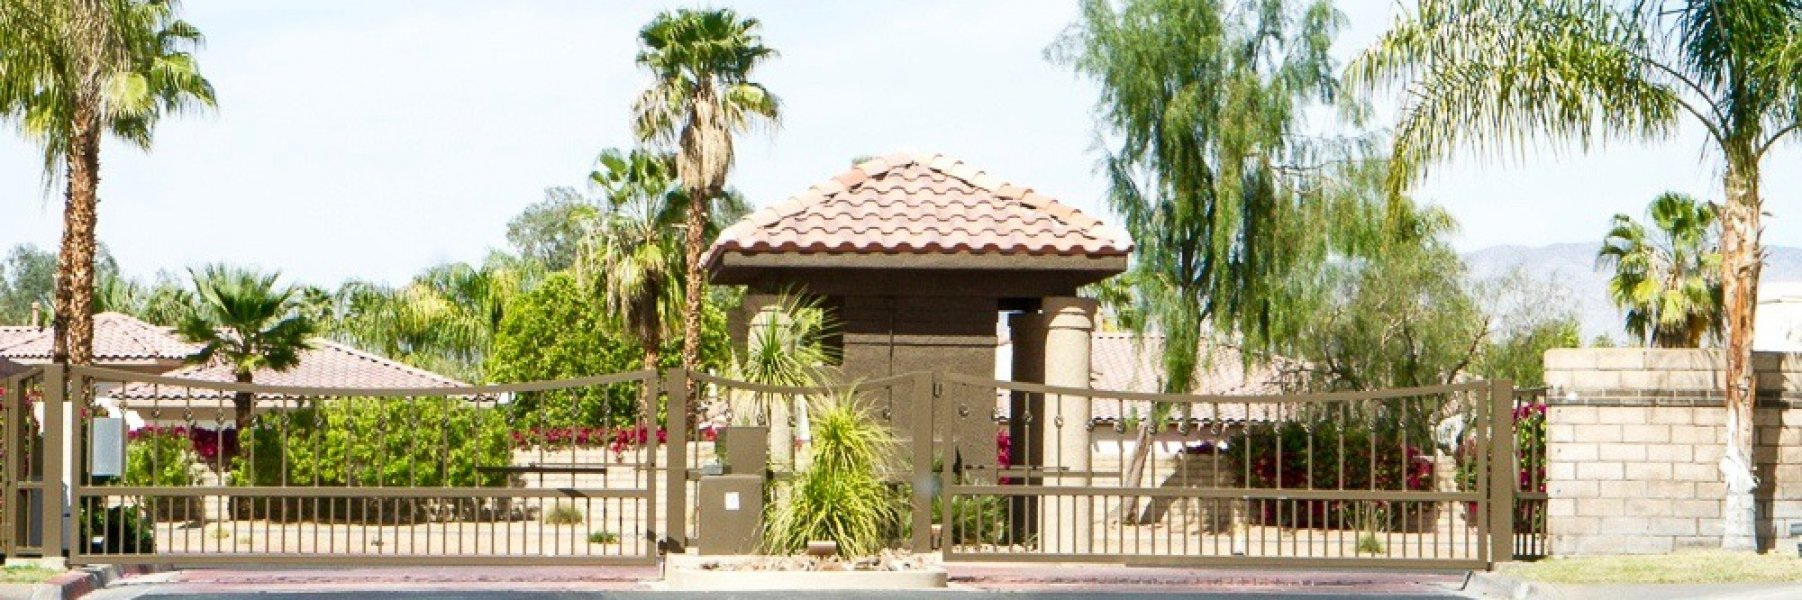 Mission Wells is a community of homes in Rancho Mirage California